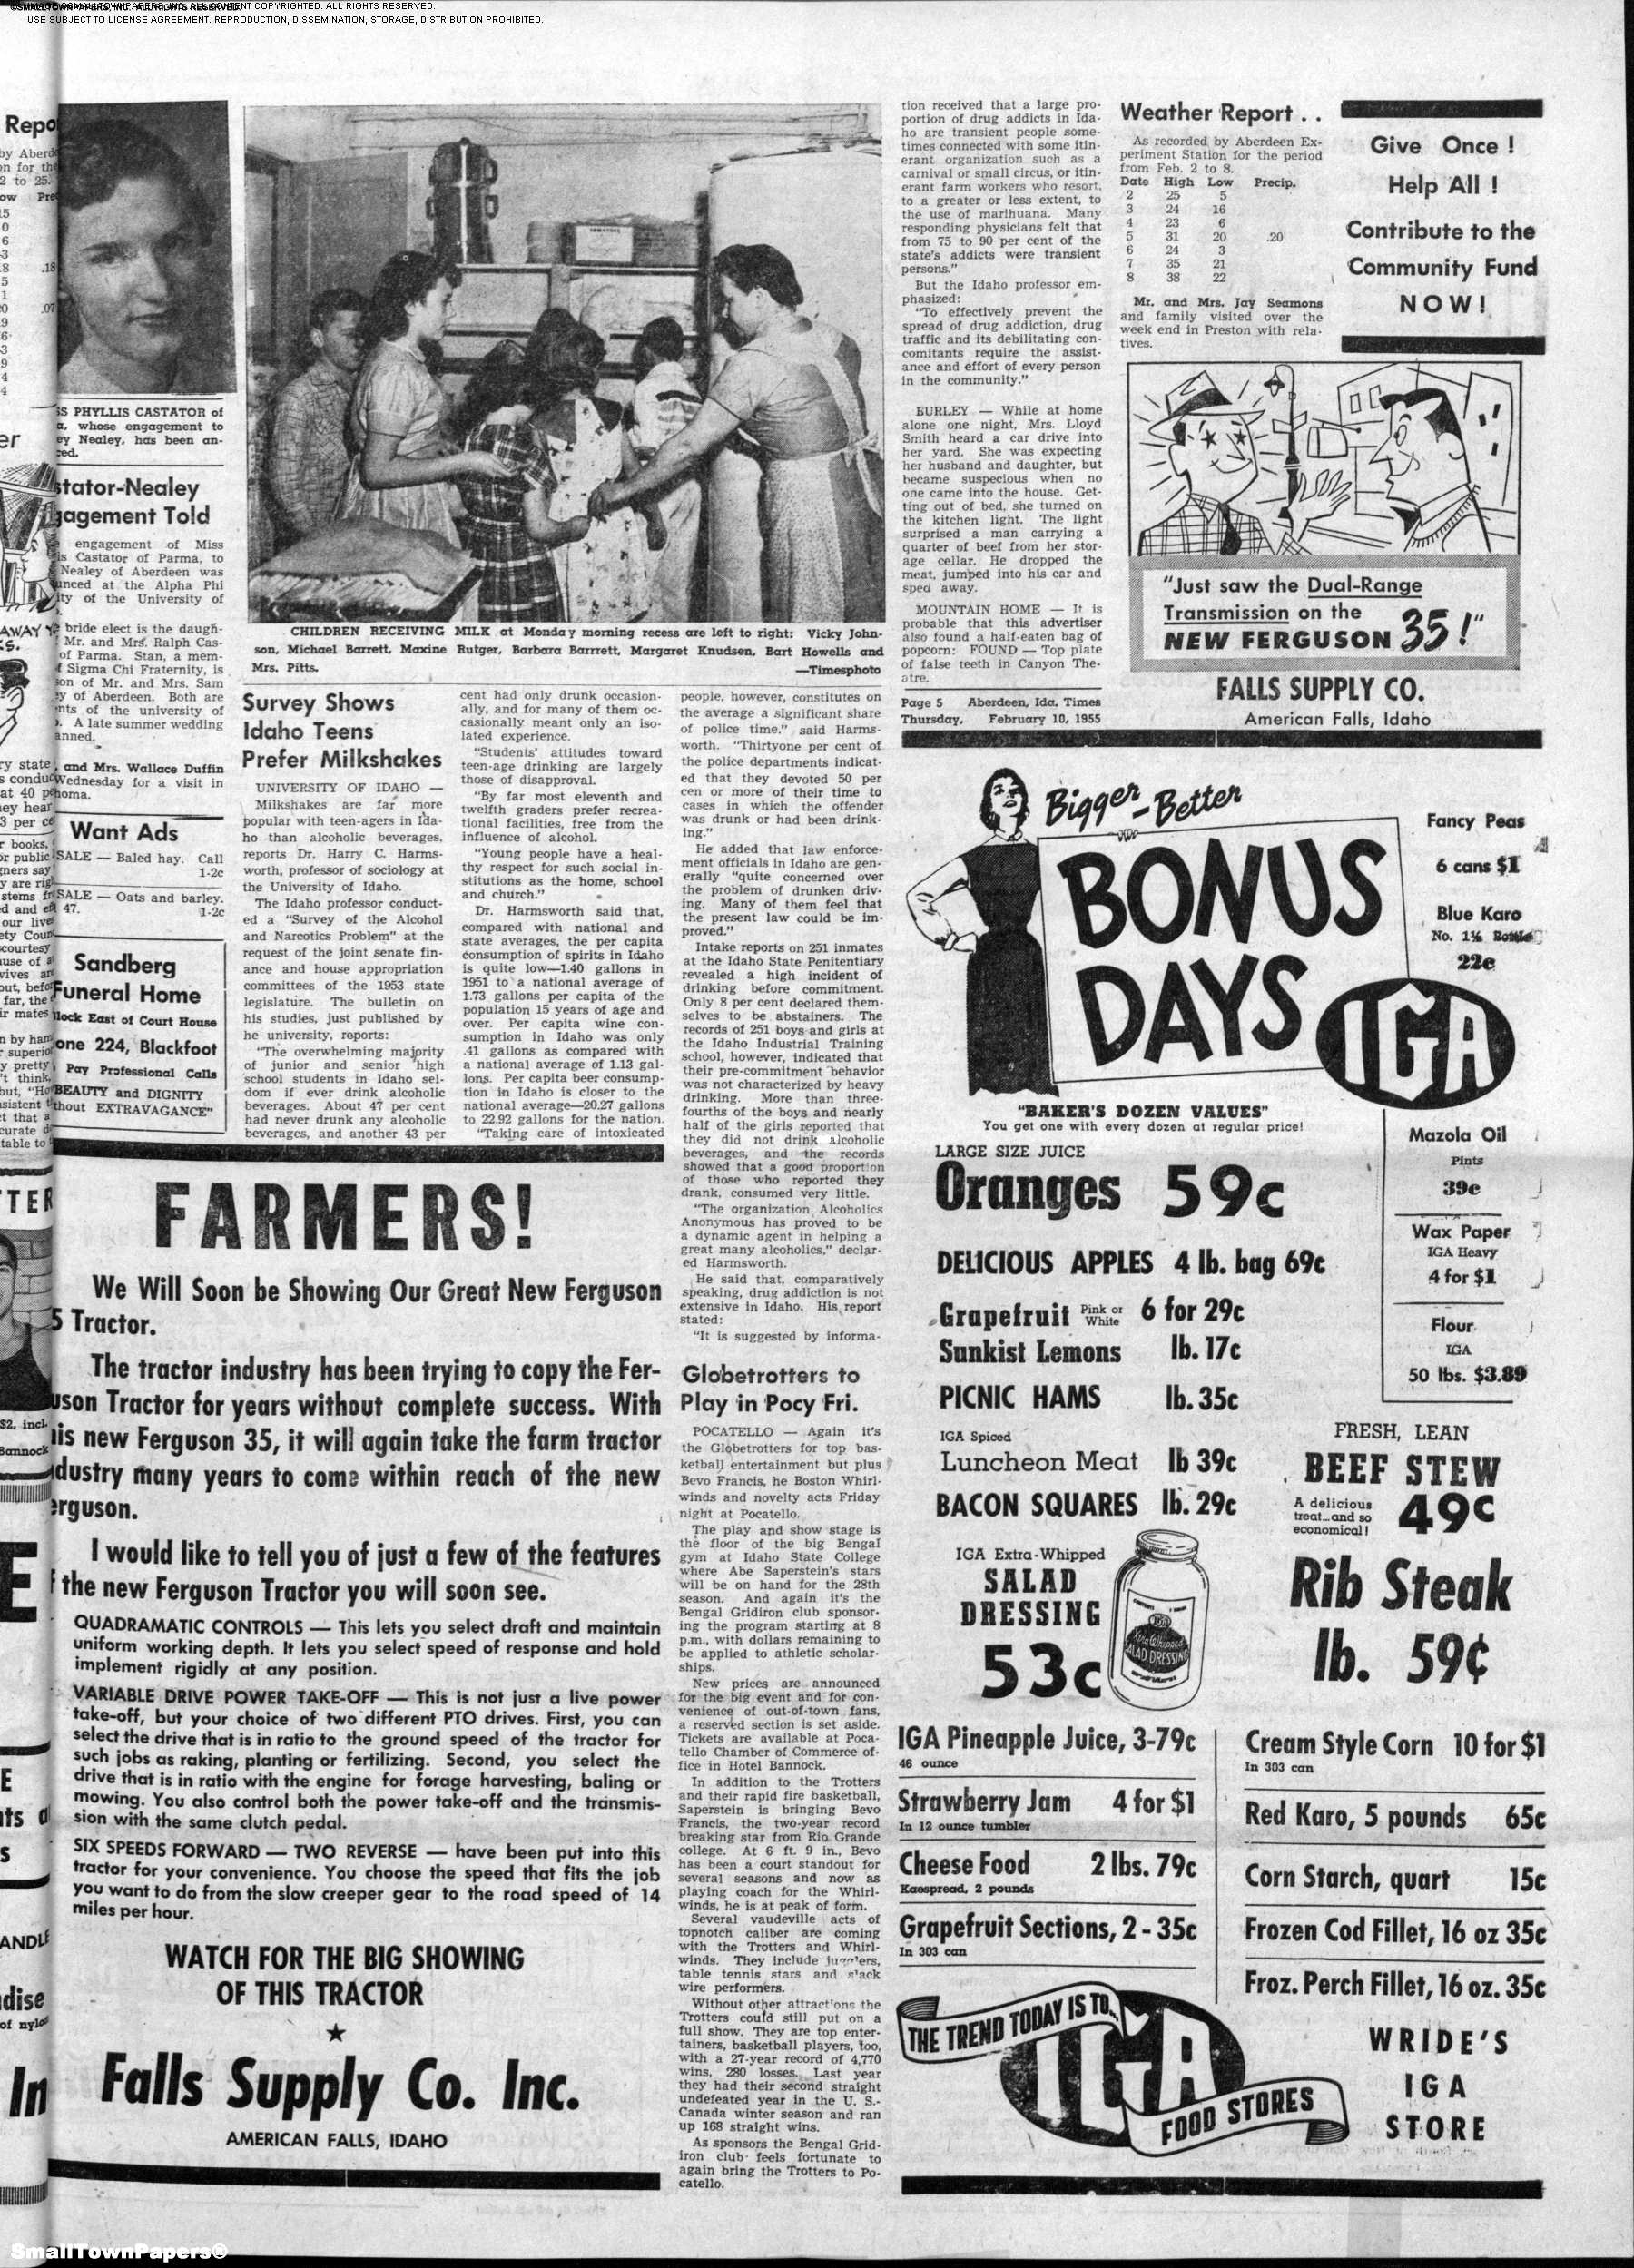 The Aberdeen Times February 10, 1955: Page 5